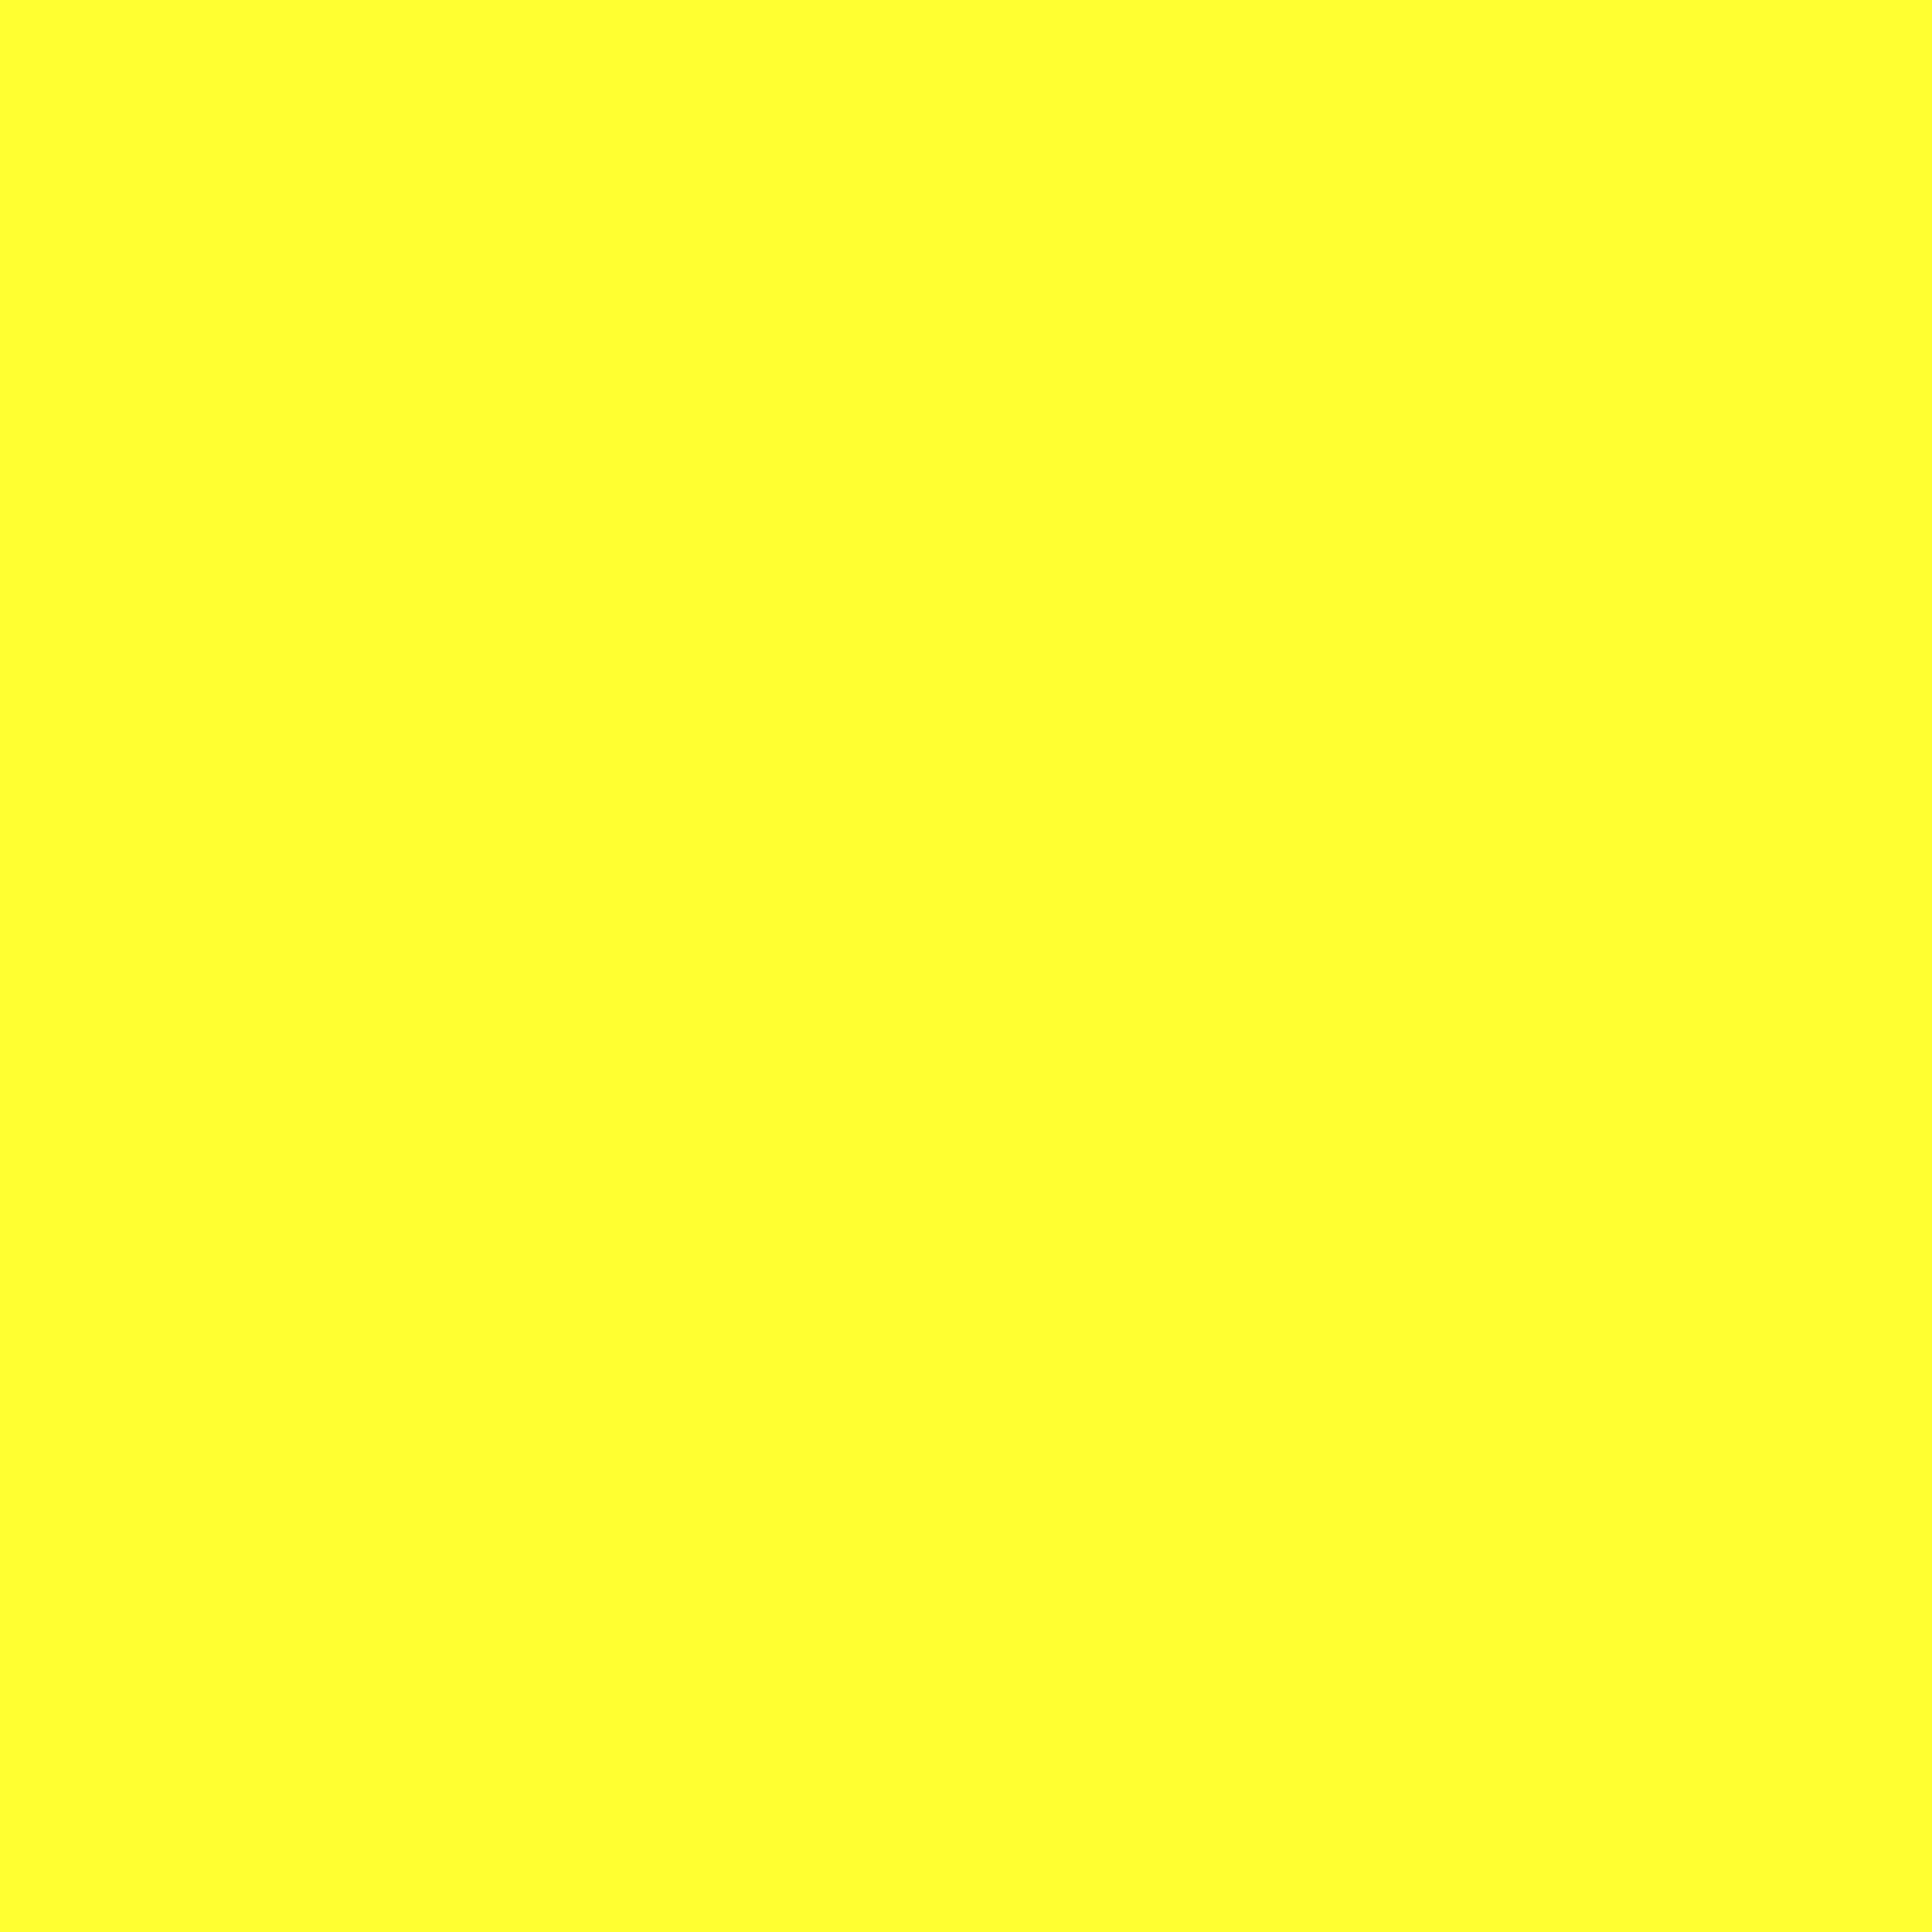 2048x2048 Daffodil Solid Color Background